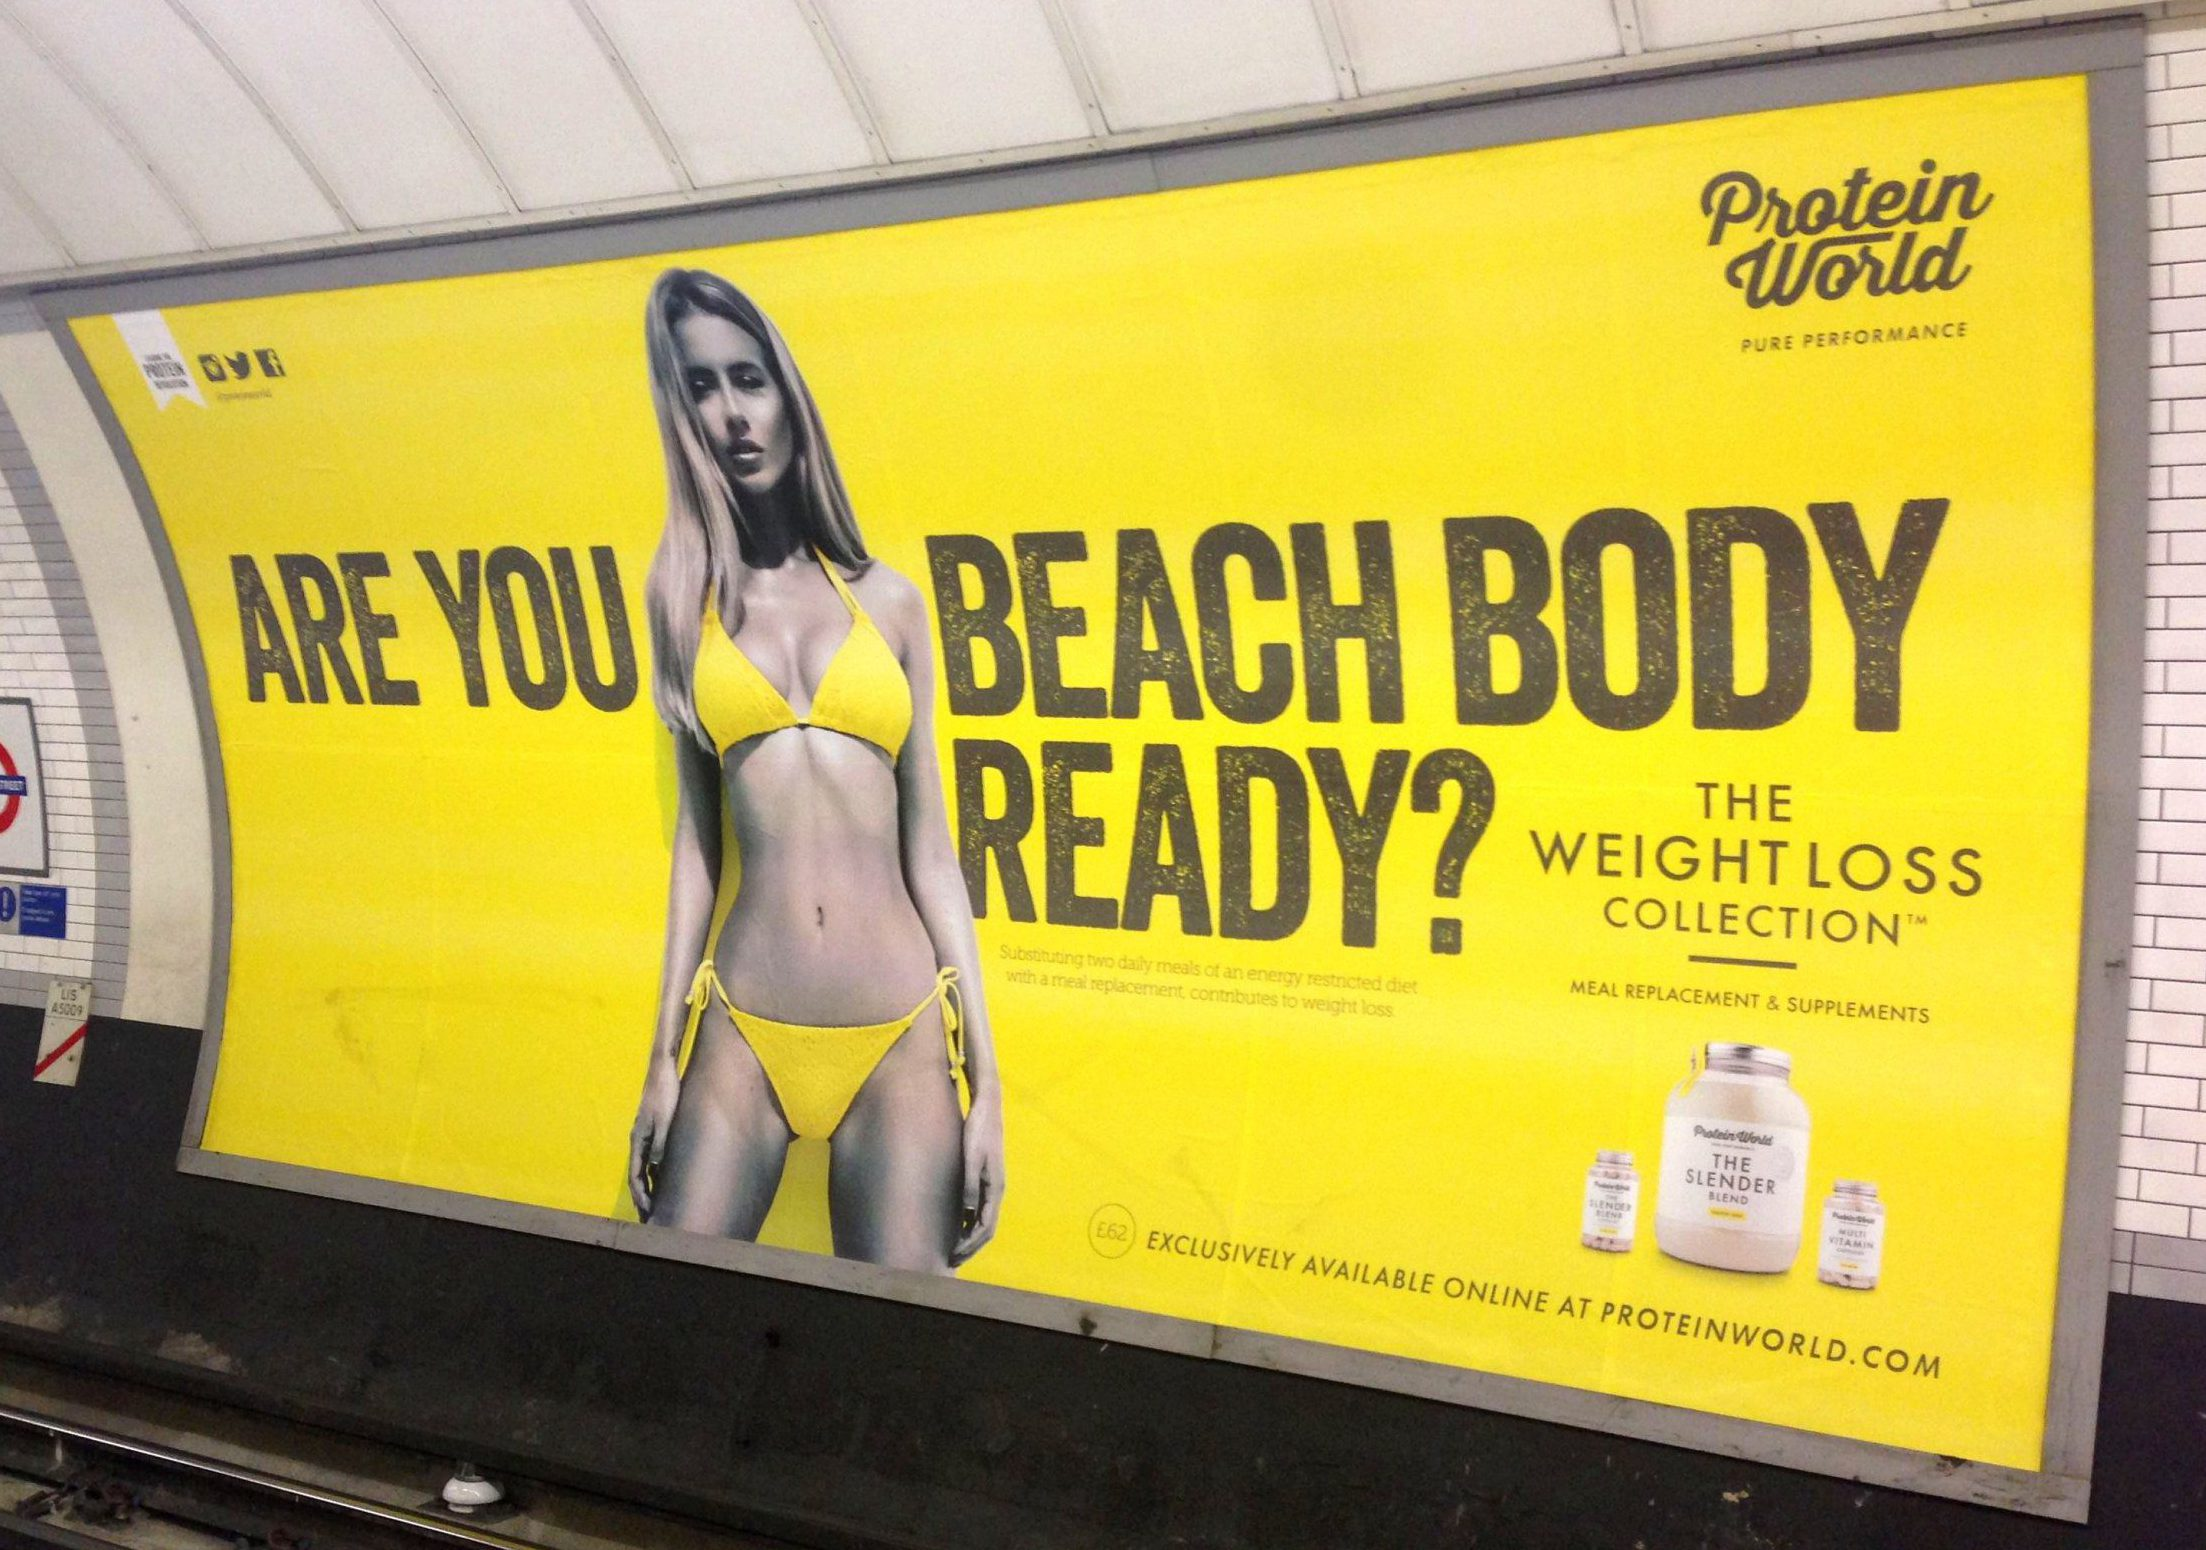 Mandatory Credit: Photo by REX/Shutterstock (3875788cq)nAre You Beach Body Ready - Protein World weight loss supplements advertnVarious, Britain - 2014nProtein World weight loss supplements advert which has caused a backlash from commuters has been pulled by Transport for Londonn